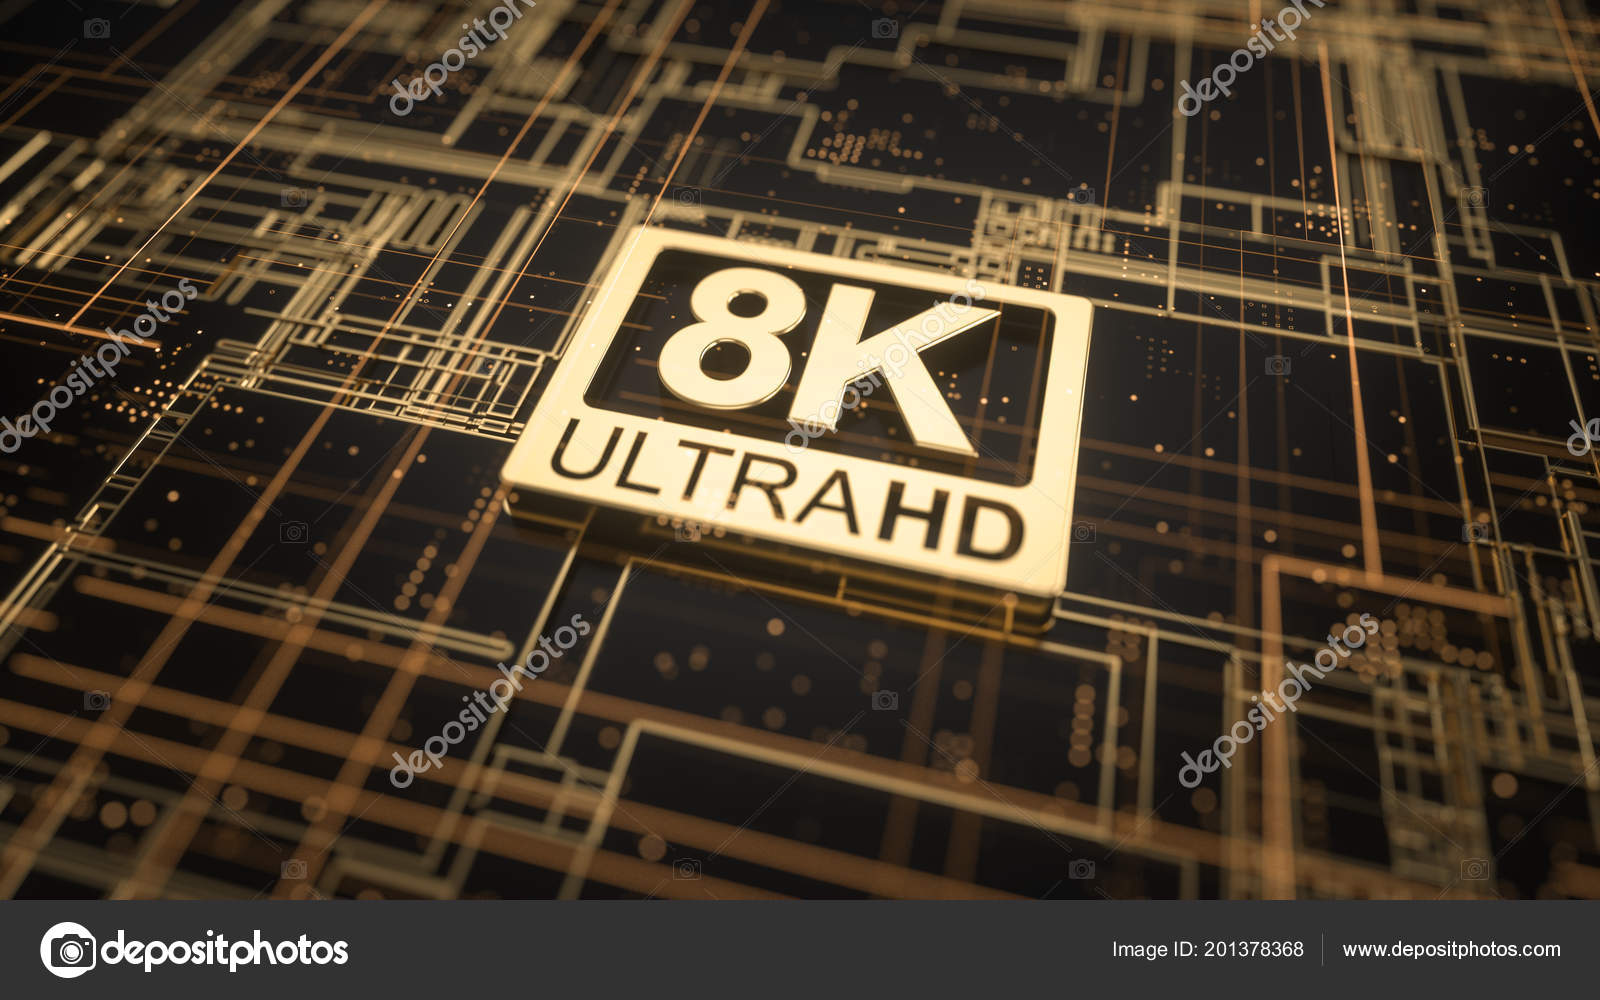 Ultra Symbol Abstract Electronic Circuit Board Television Technology Symbols A That 8k Hd On Concept Of High Definition Sign Digital Background With Many Lines